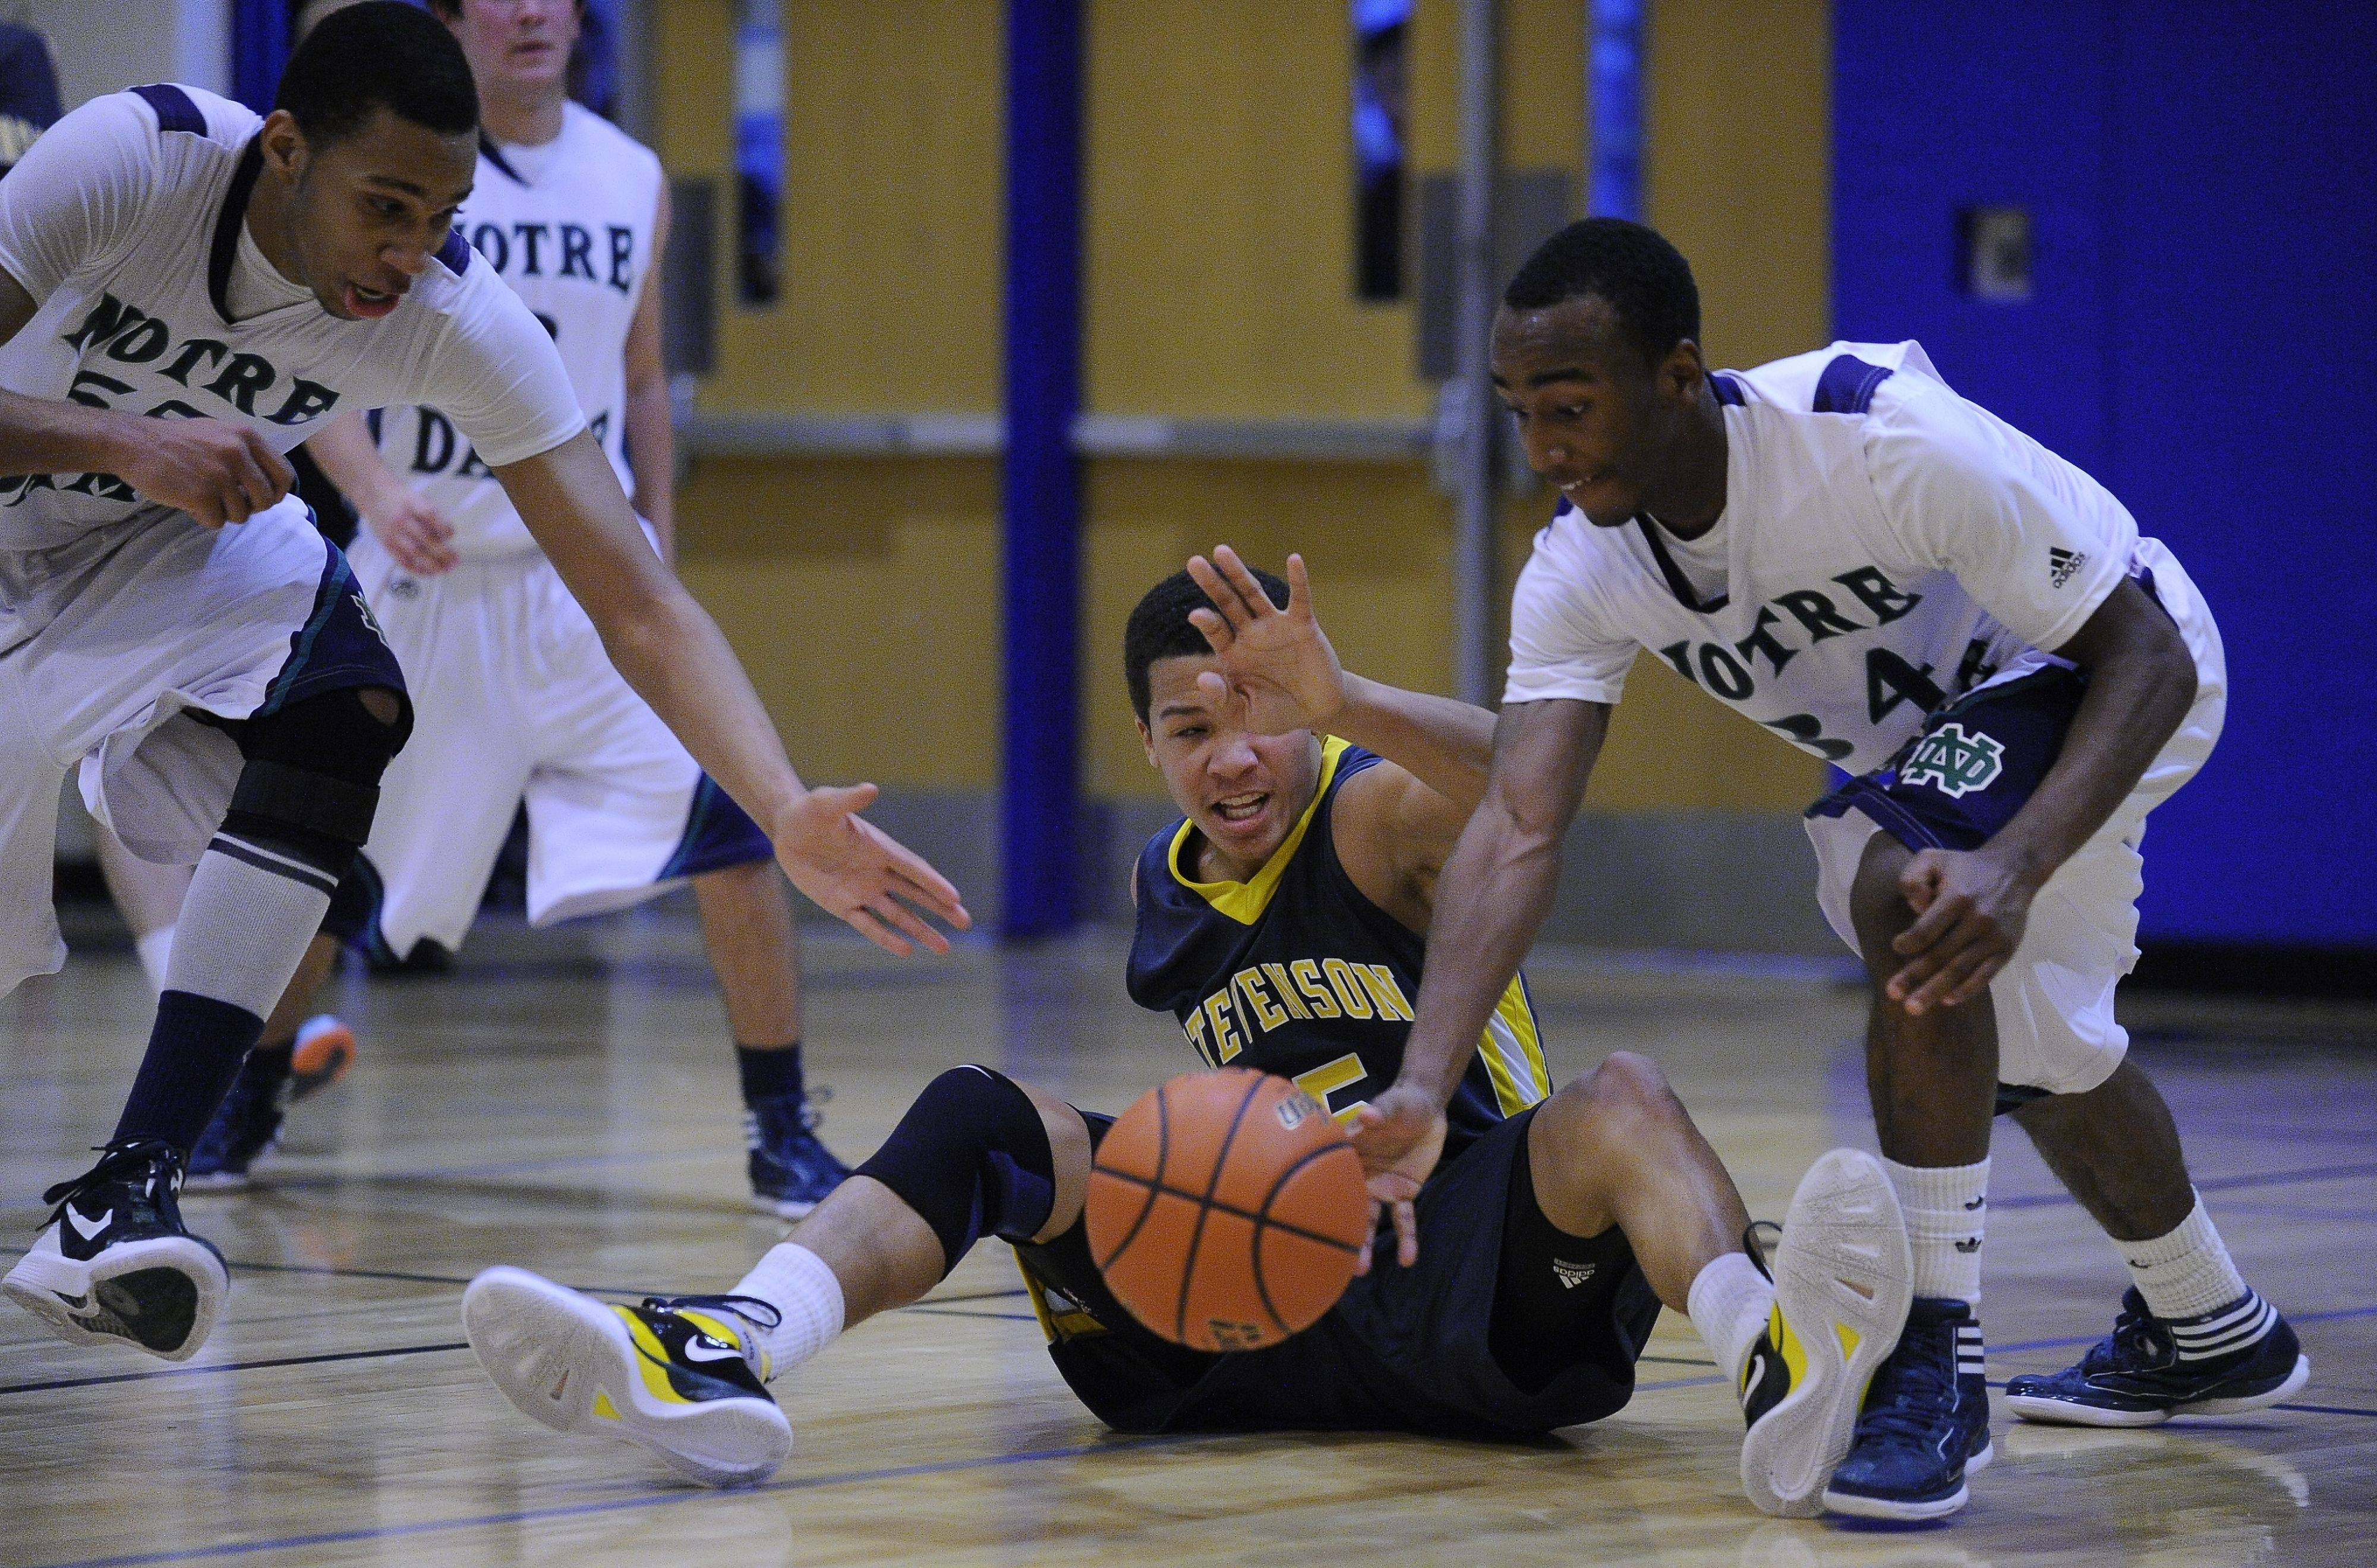 Images: Stevenson vs. Notre Dame boys basketball